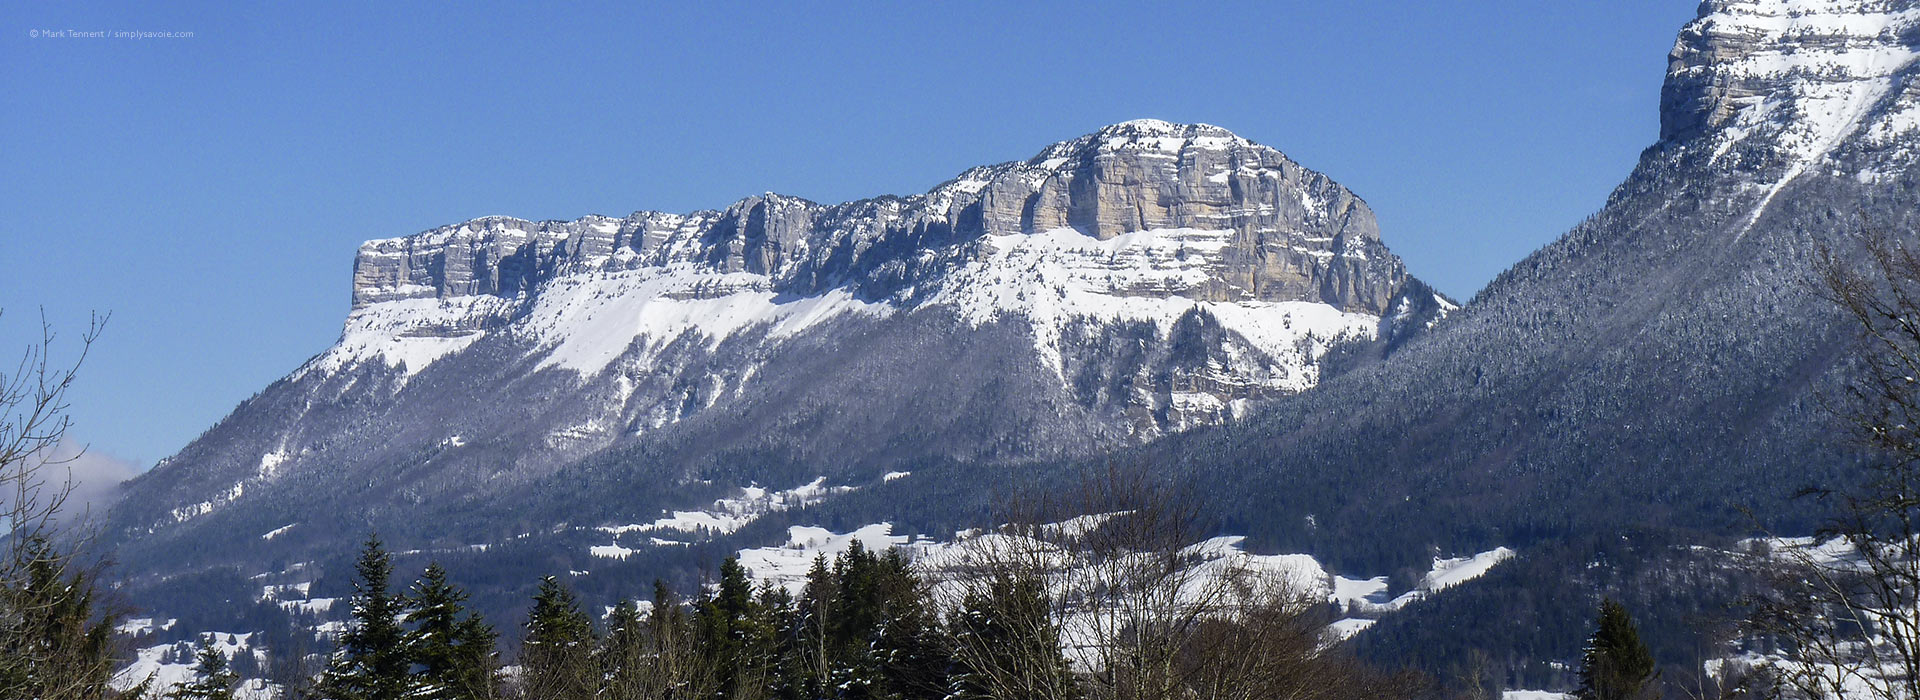 Wide view of snow-covered mountains and valley in Chartreuse Massif